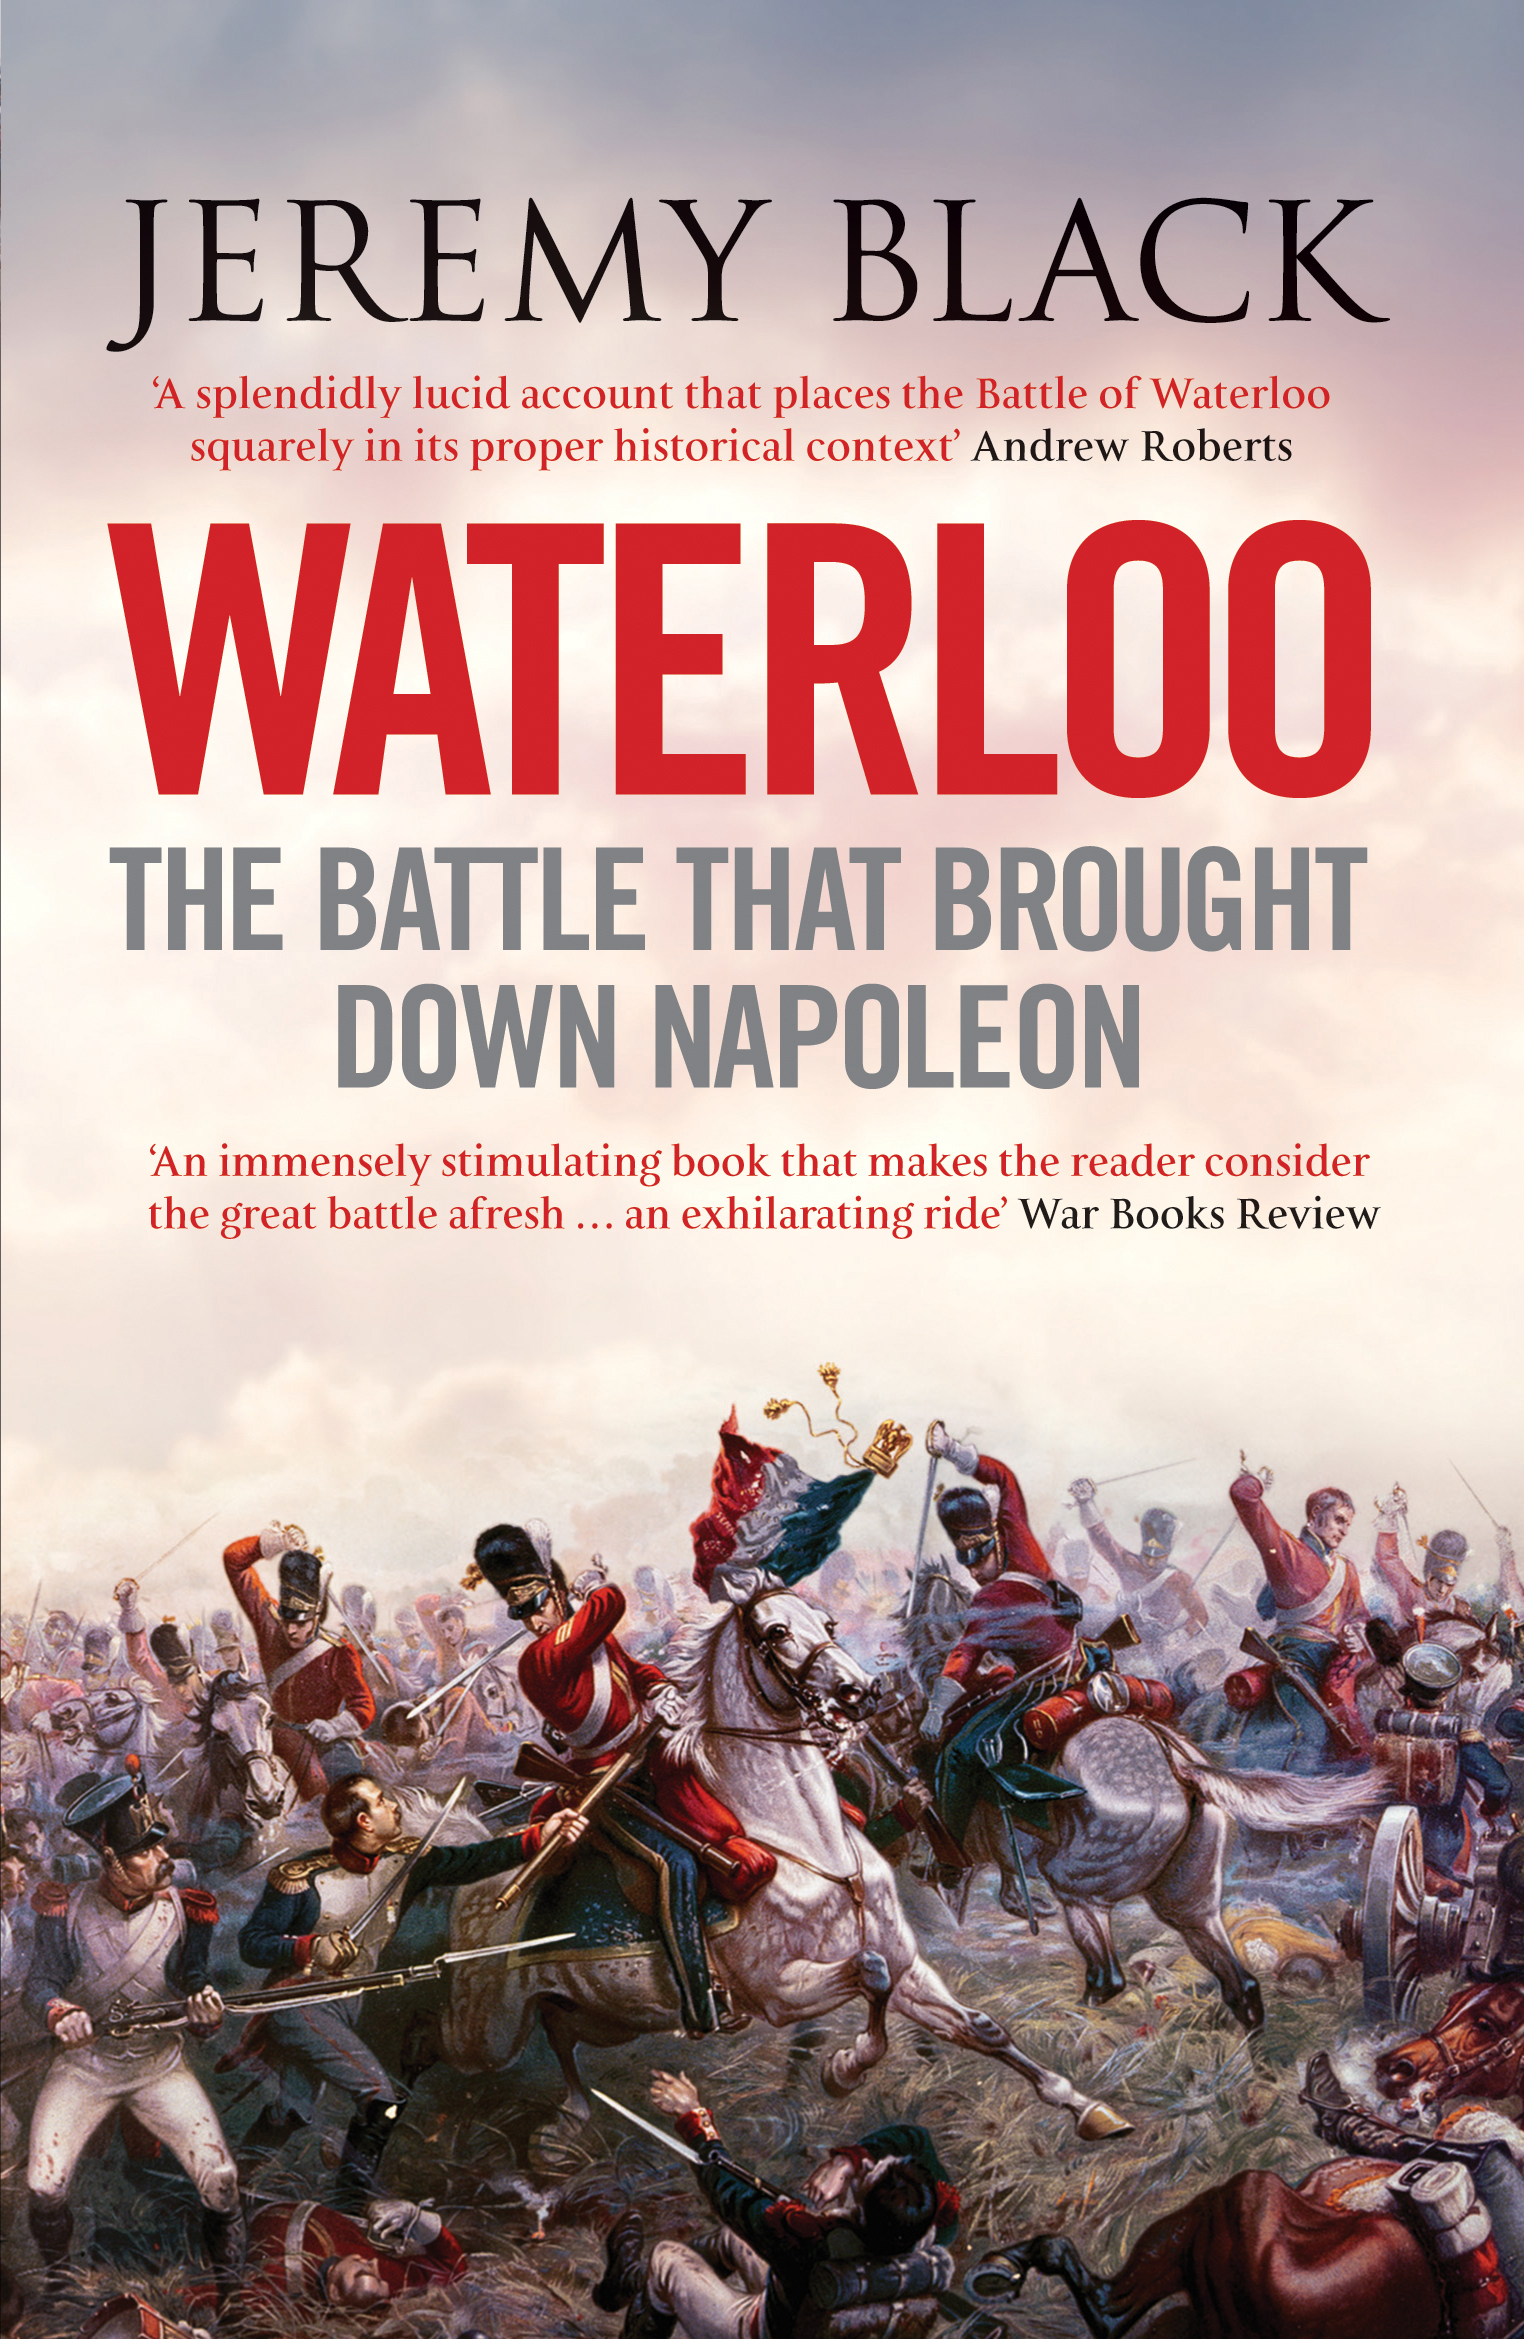 Waterloo by Jeremy Black, ISBN: 9781848312333